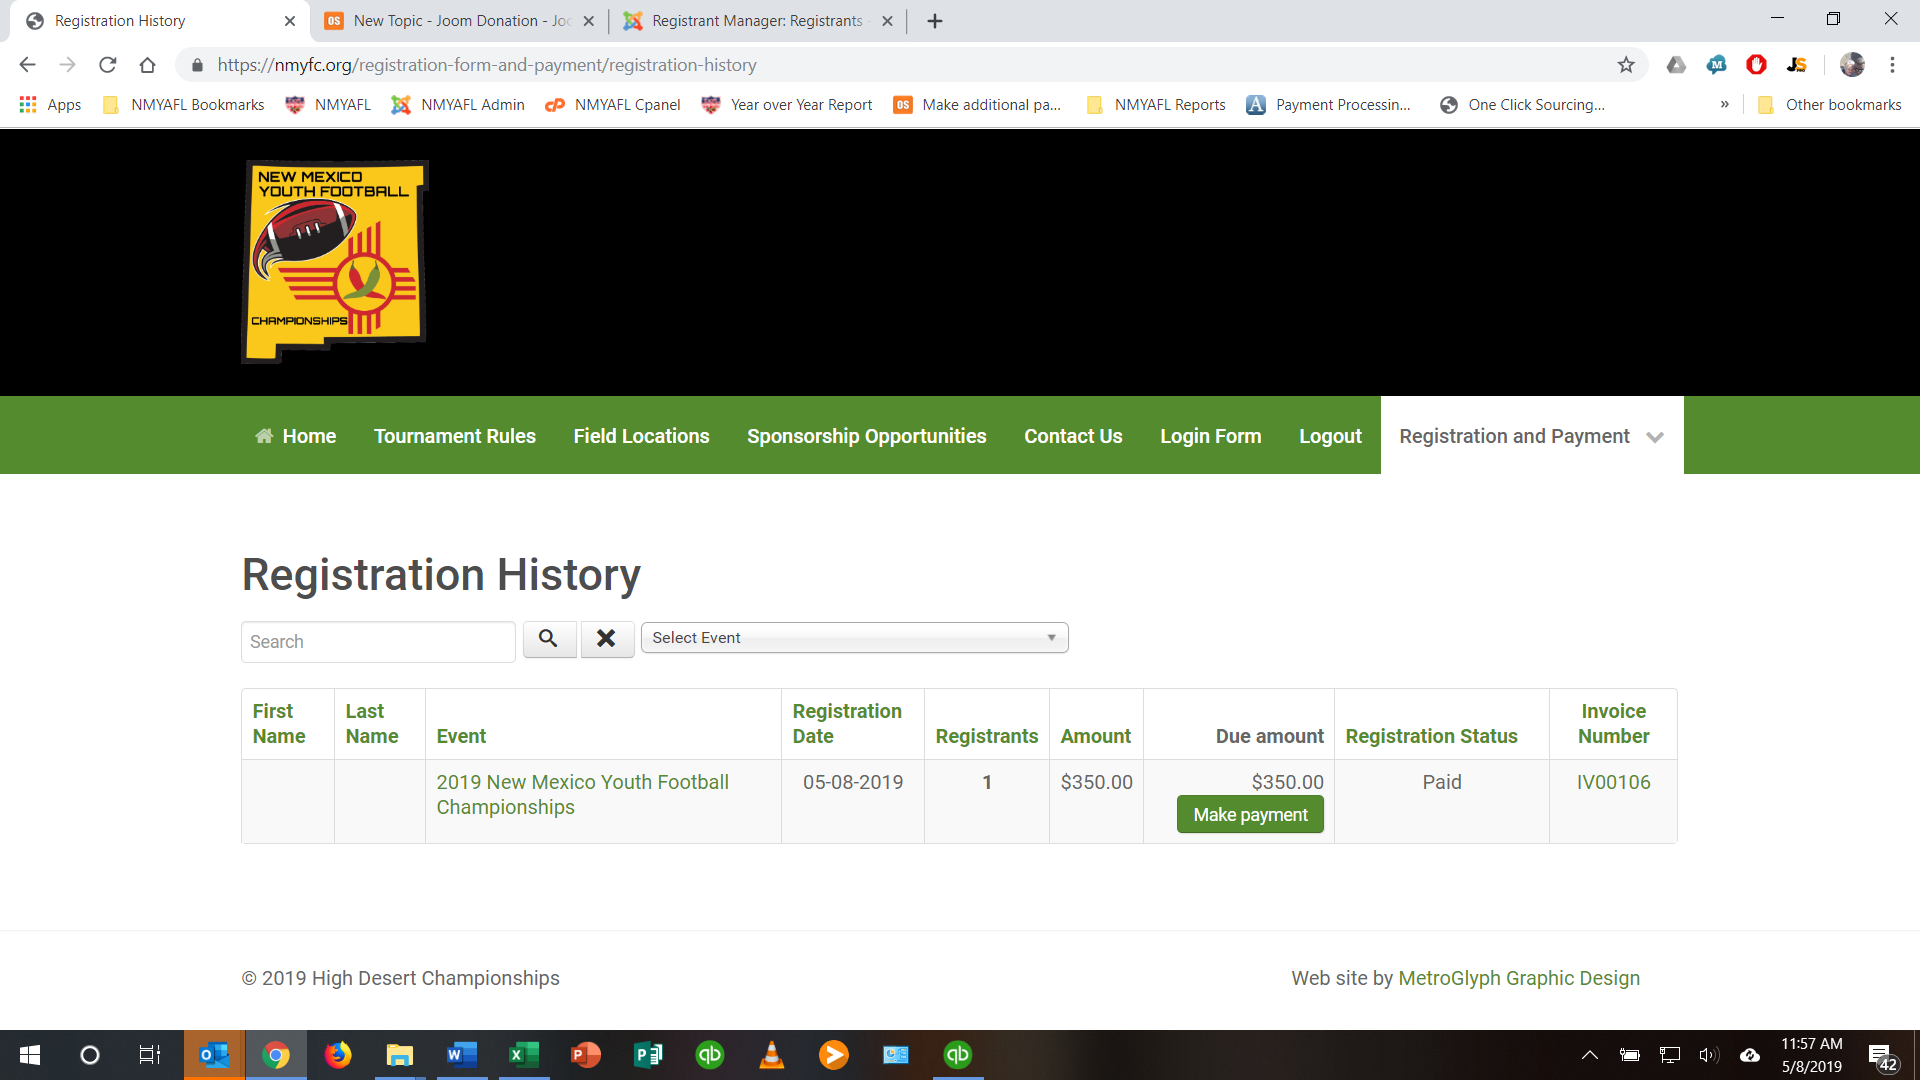 RegistrationhistorywithMakePaymentButton.png